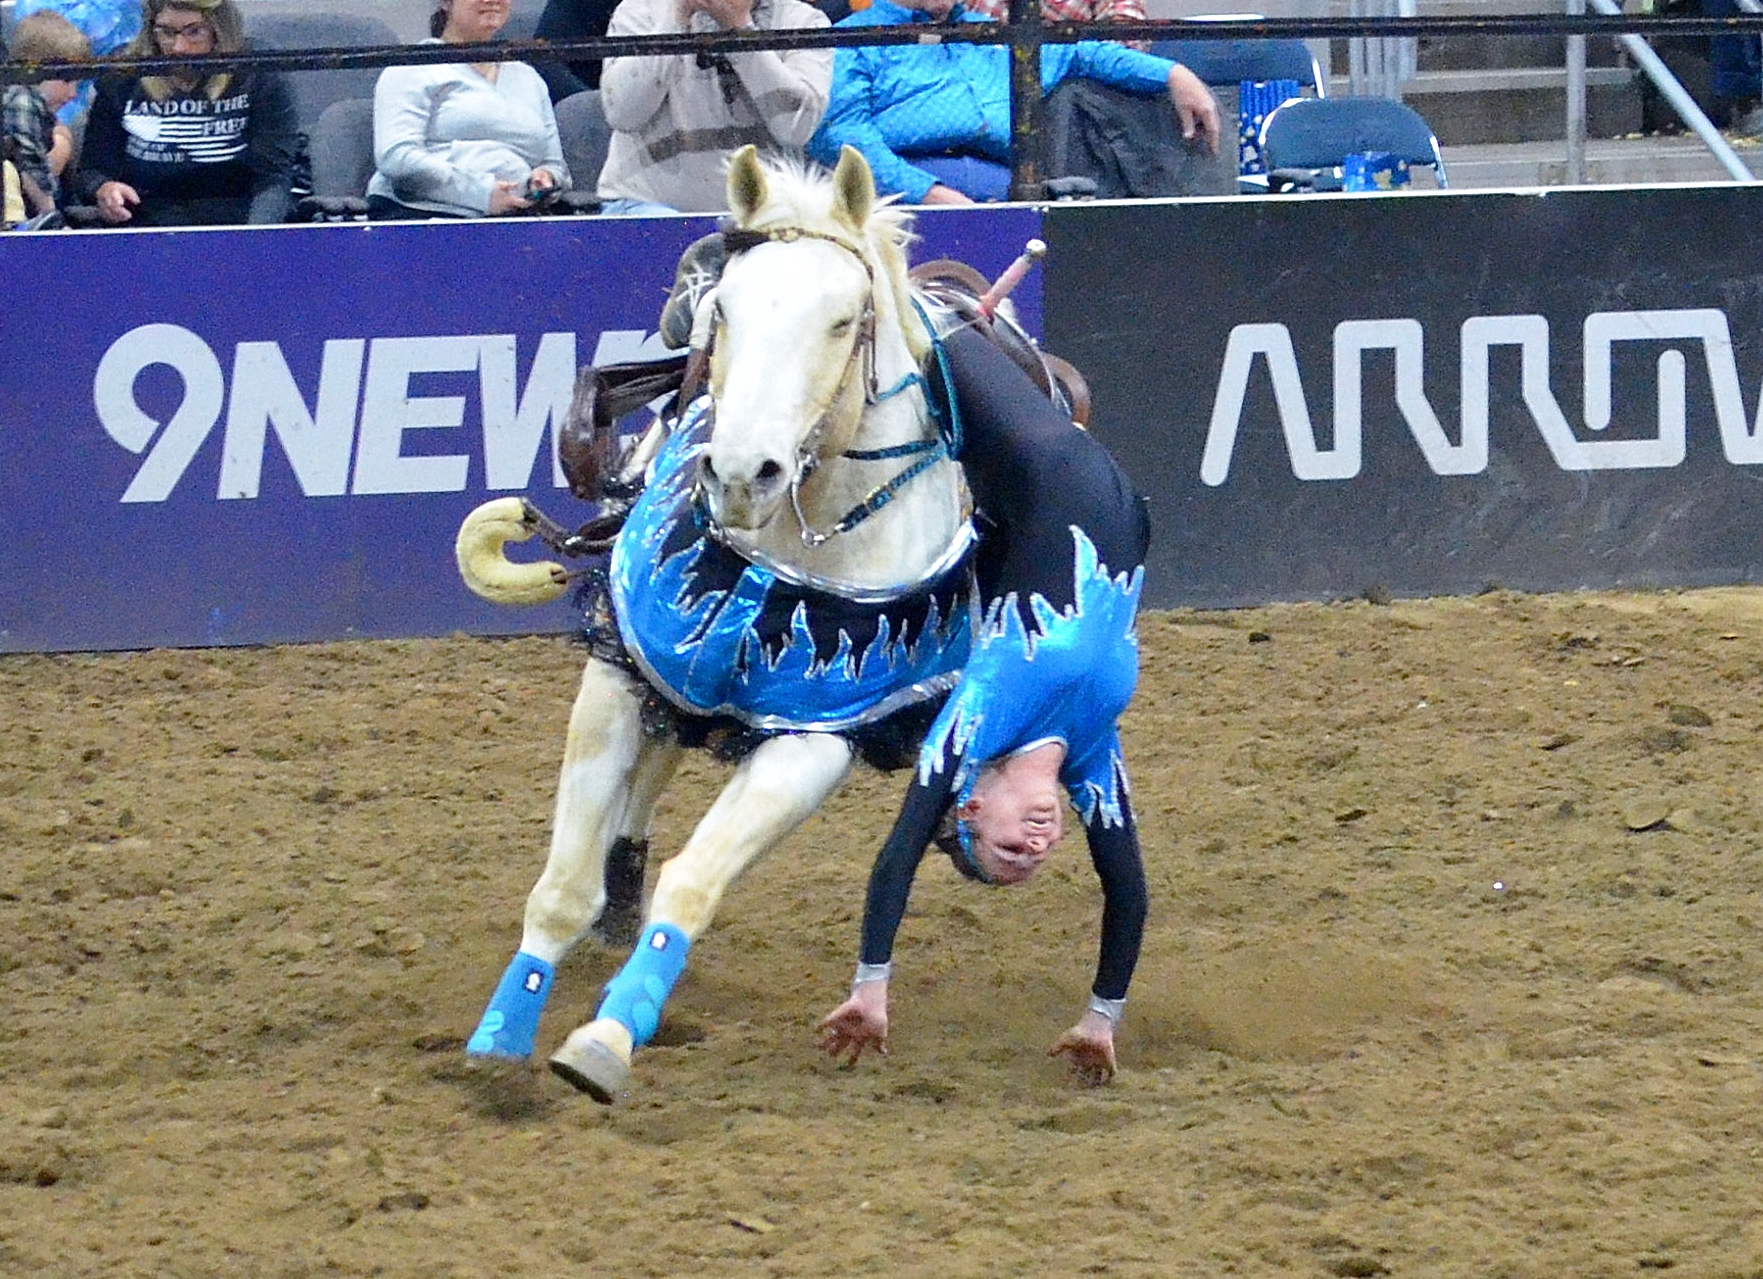 Stock Show 2020.2020 National Western Stock Show Rodeo Westernaires